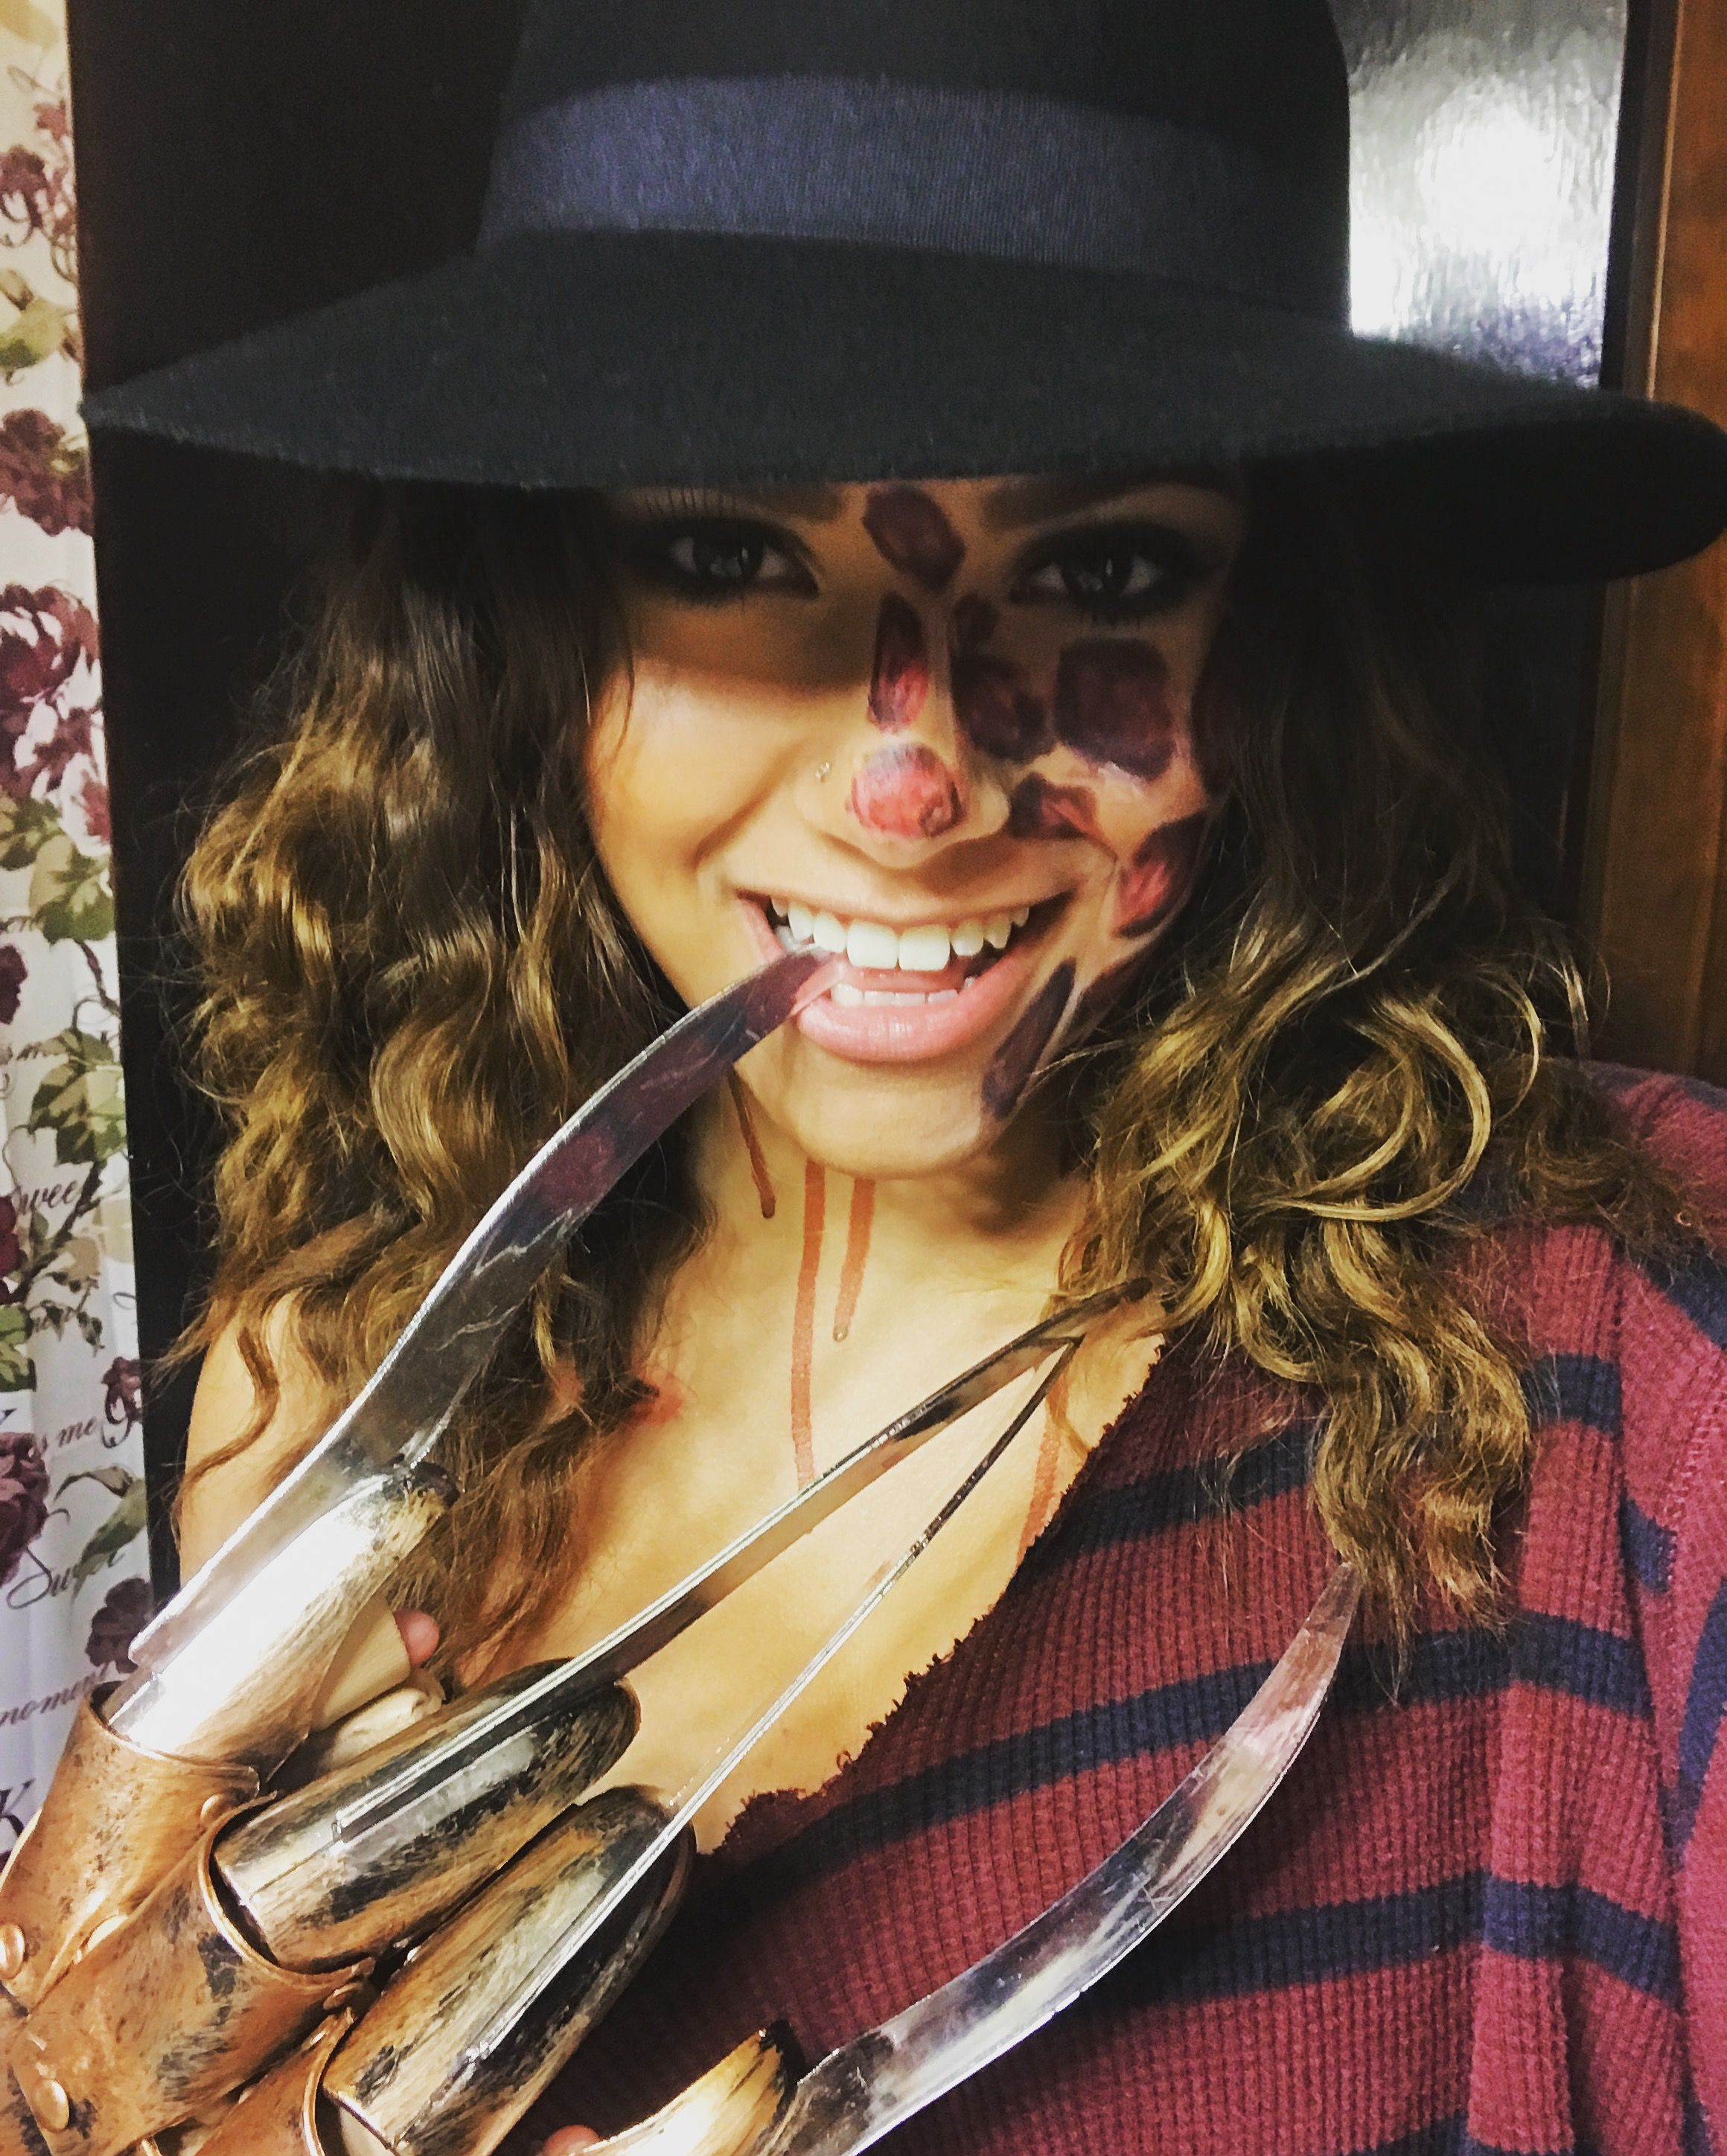 Freddy Krueger Halloween costume | DIY ♥유 | Pinterest | Freddy ...